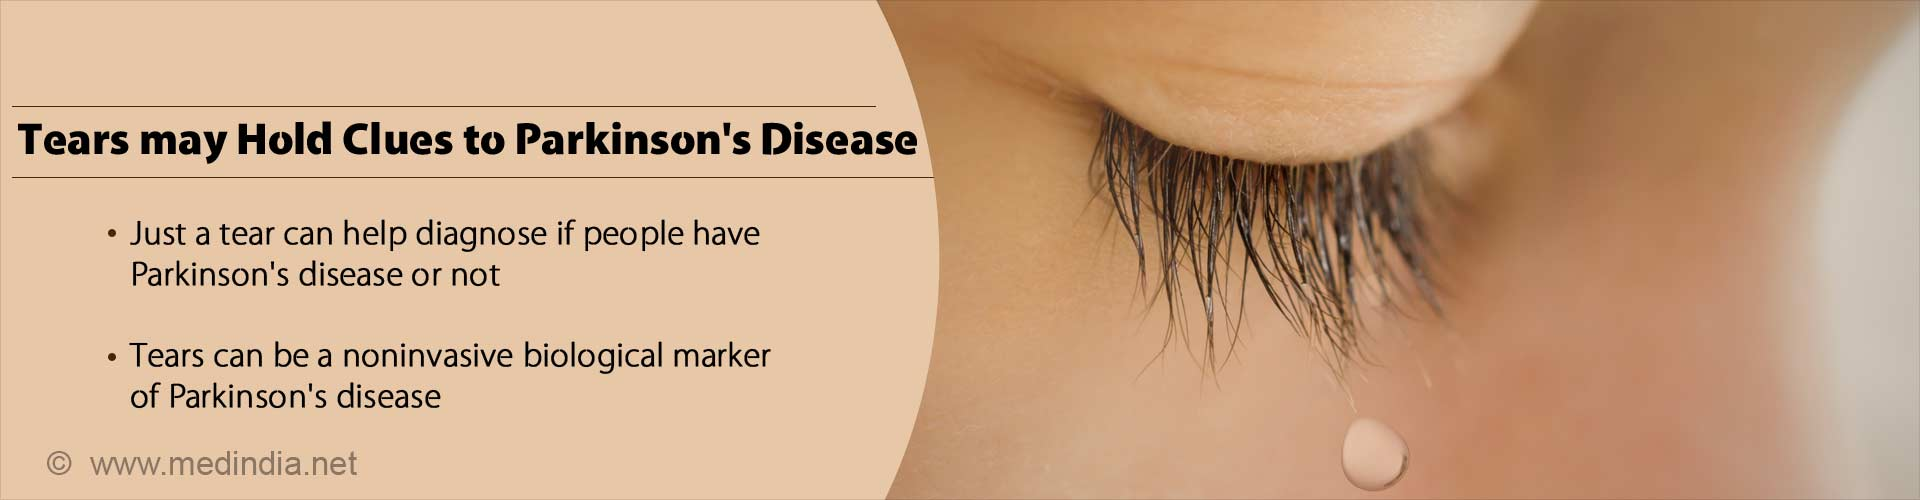 tears may hold clues to parkinson's disease - just a tear can help diagnose of people have parksinson's disease or not - tears can be a noninvasive biological marker of parkinson's disease